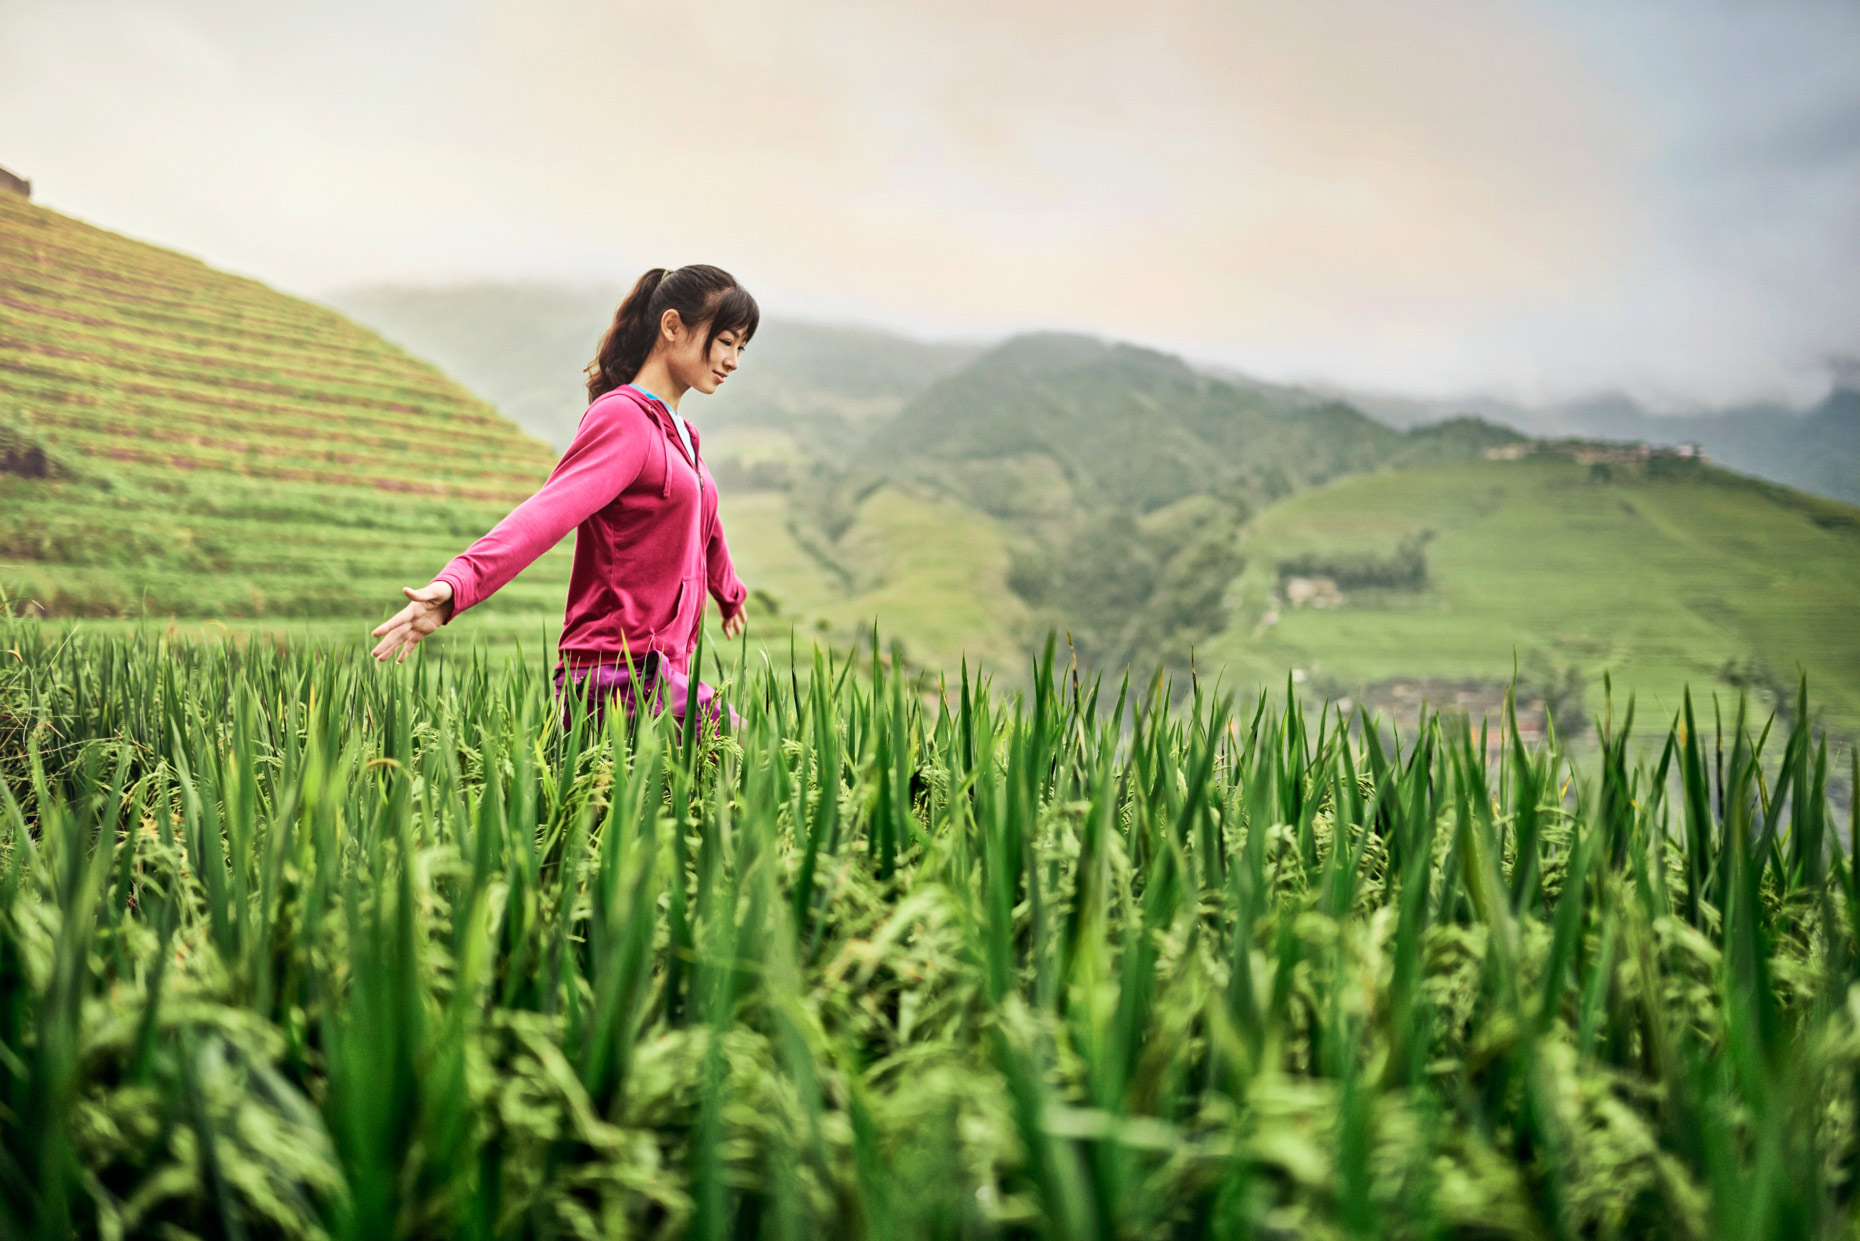 Abbott_China_Longji_Shot_04_Girl_In_field_0030_v3_Highres_TIFF_004